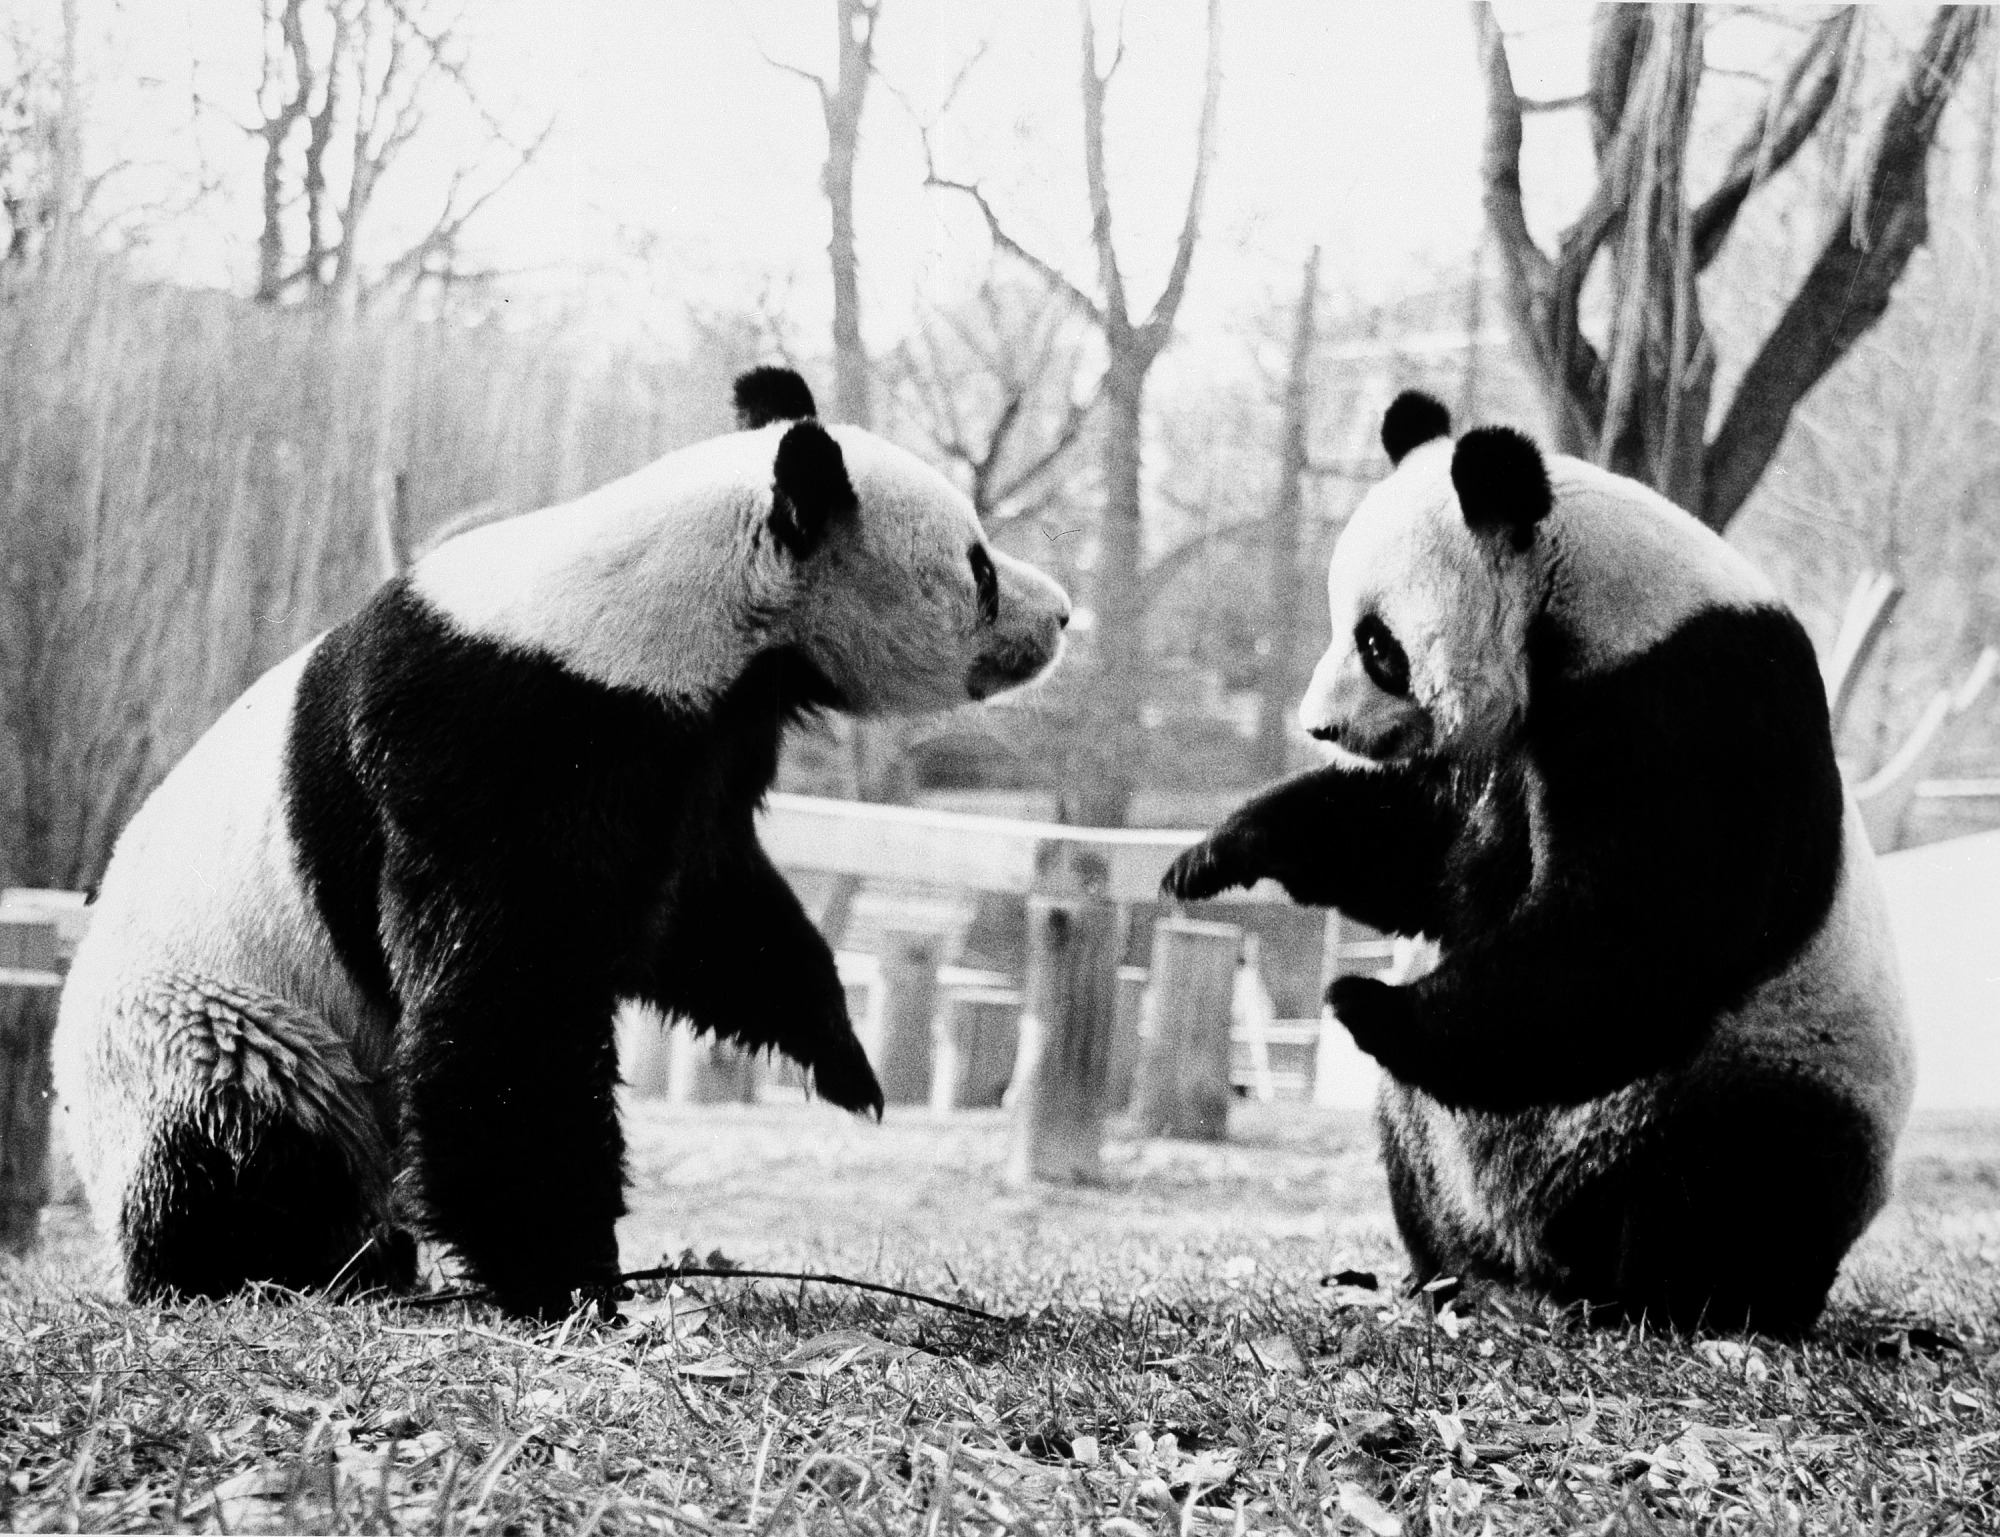 Jul 21 Ling-Ling and Hsing-Hsing at National Zoo